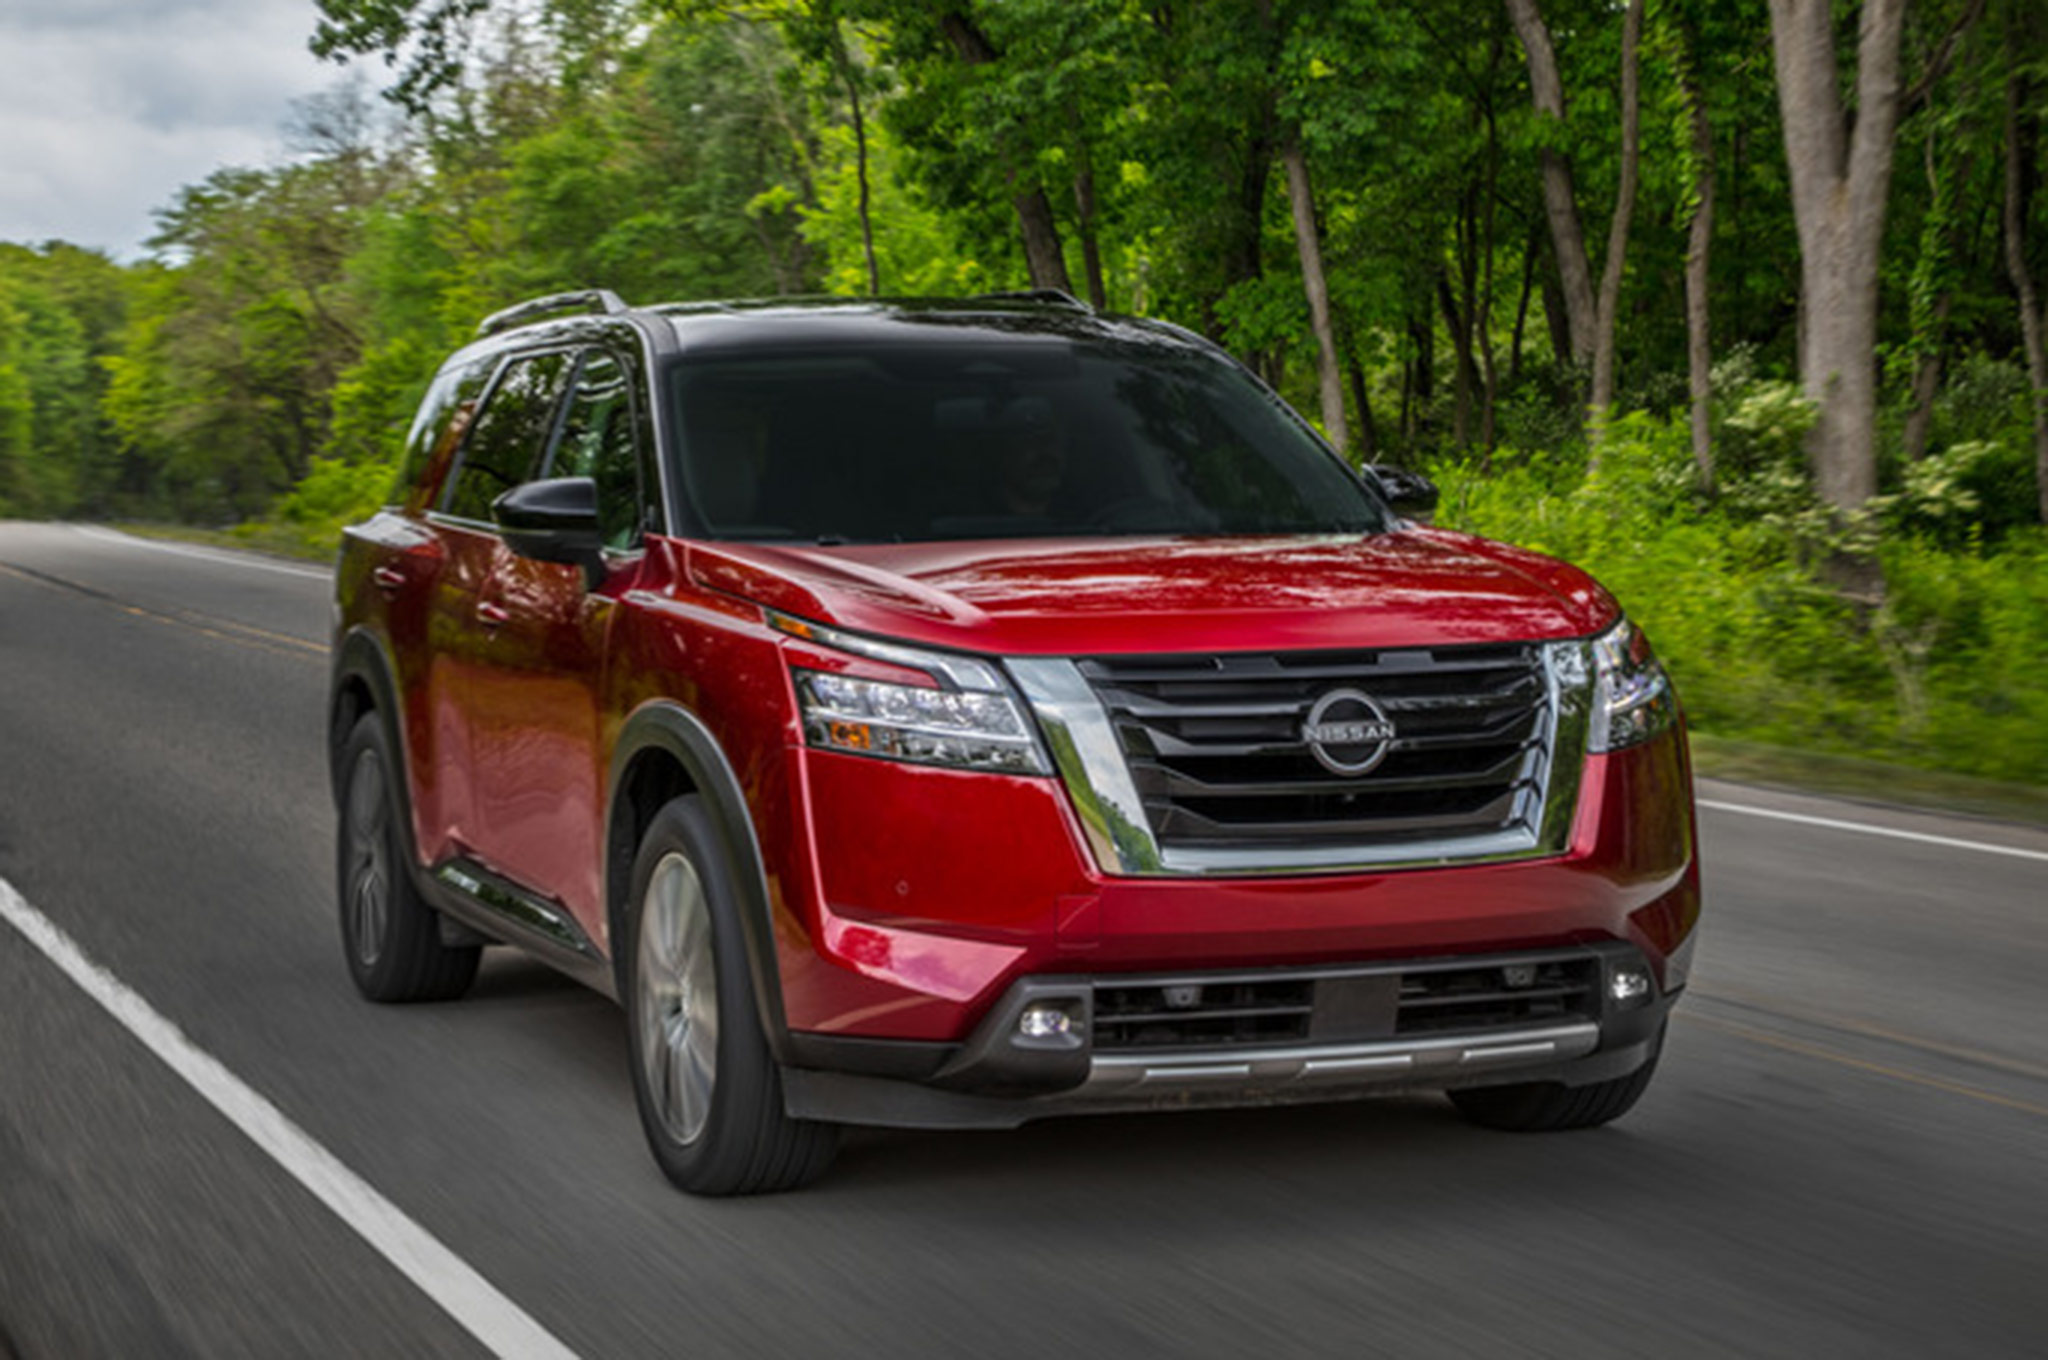 2022 Nissan Pathfinder First Drive: Once Lost, Now Found